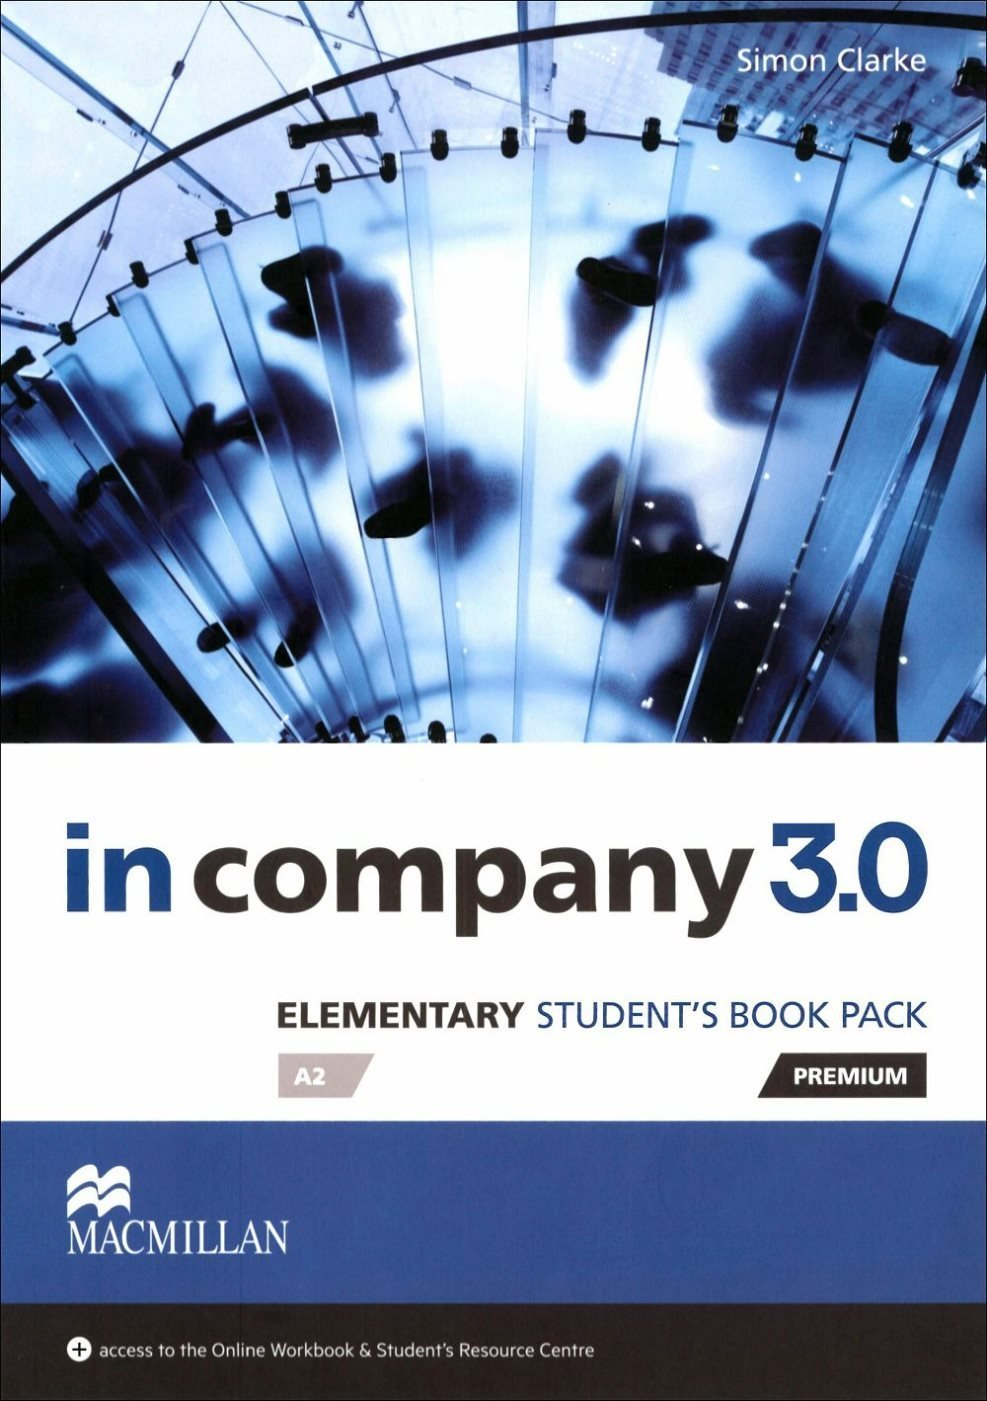 In company 30 elementary level students book pack simon clarke in company 30 elementary level students book pack simon clarke 9780230455009 amazon books fandeluxe Images